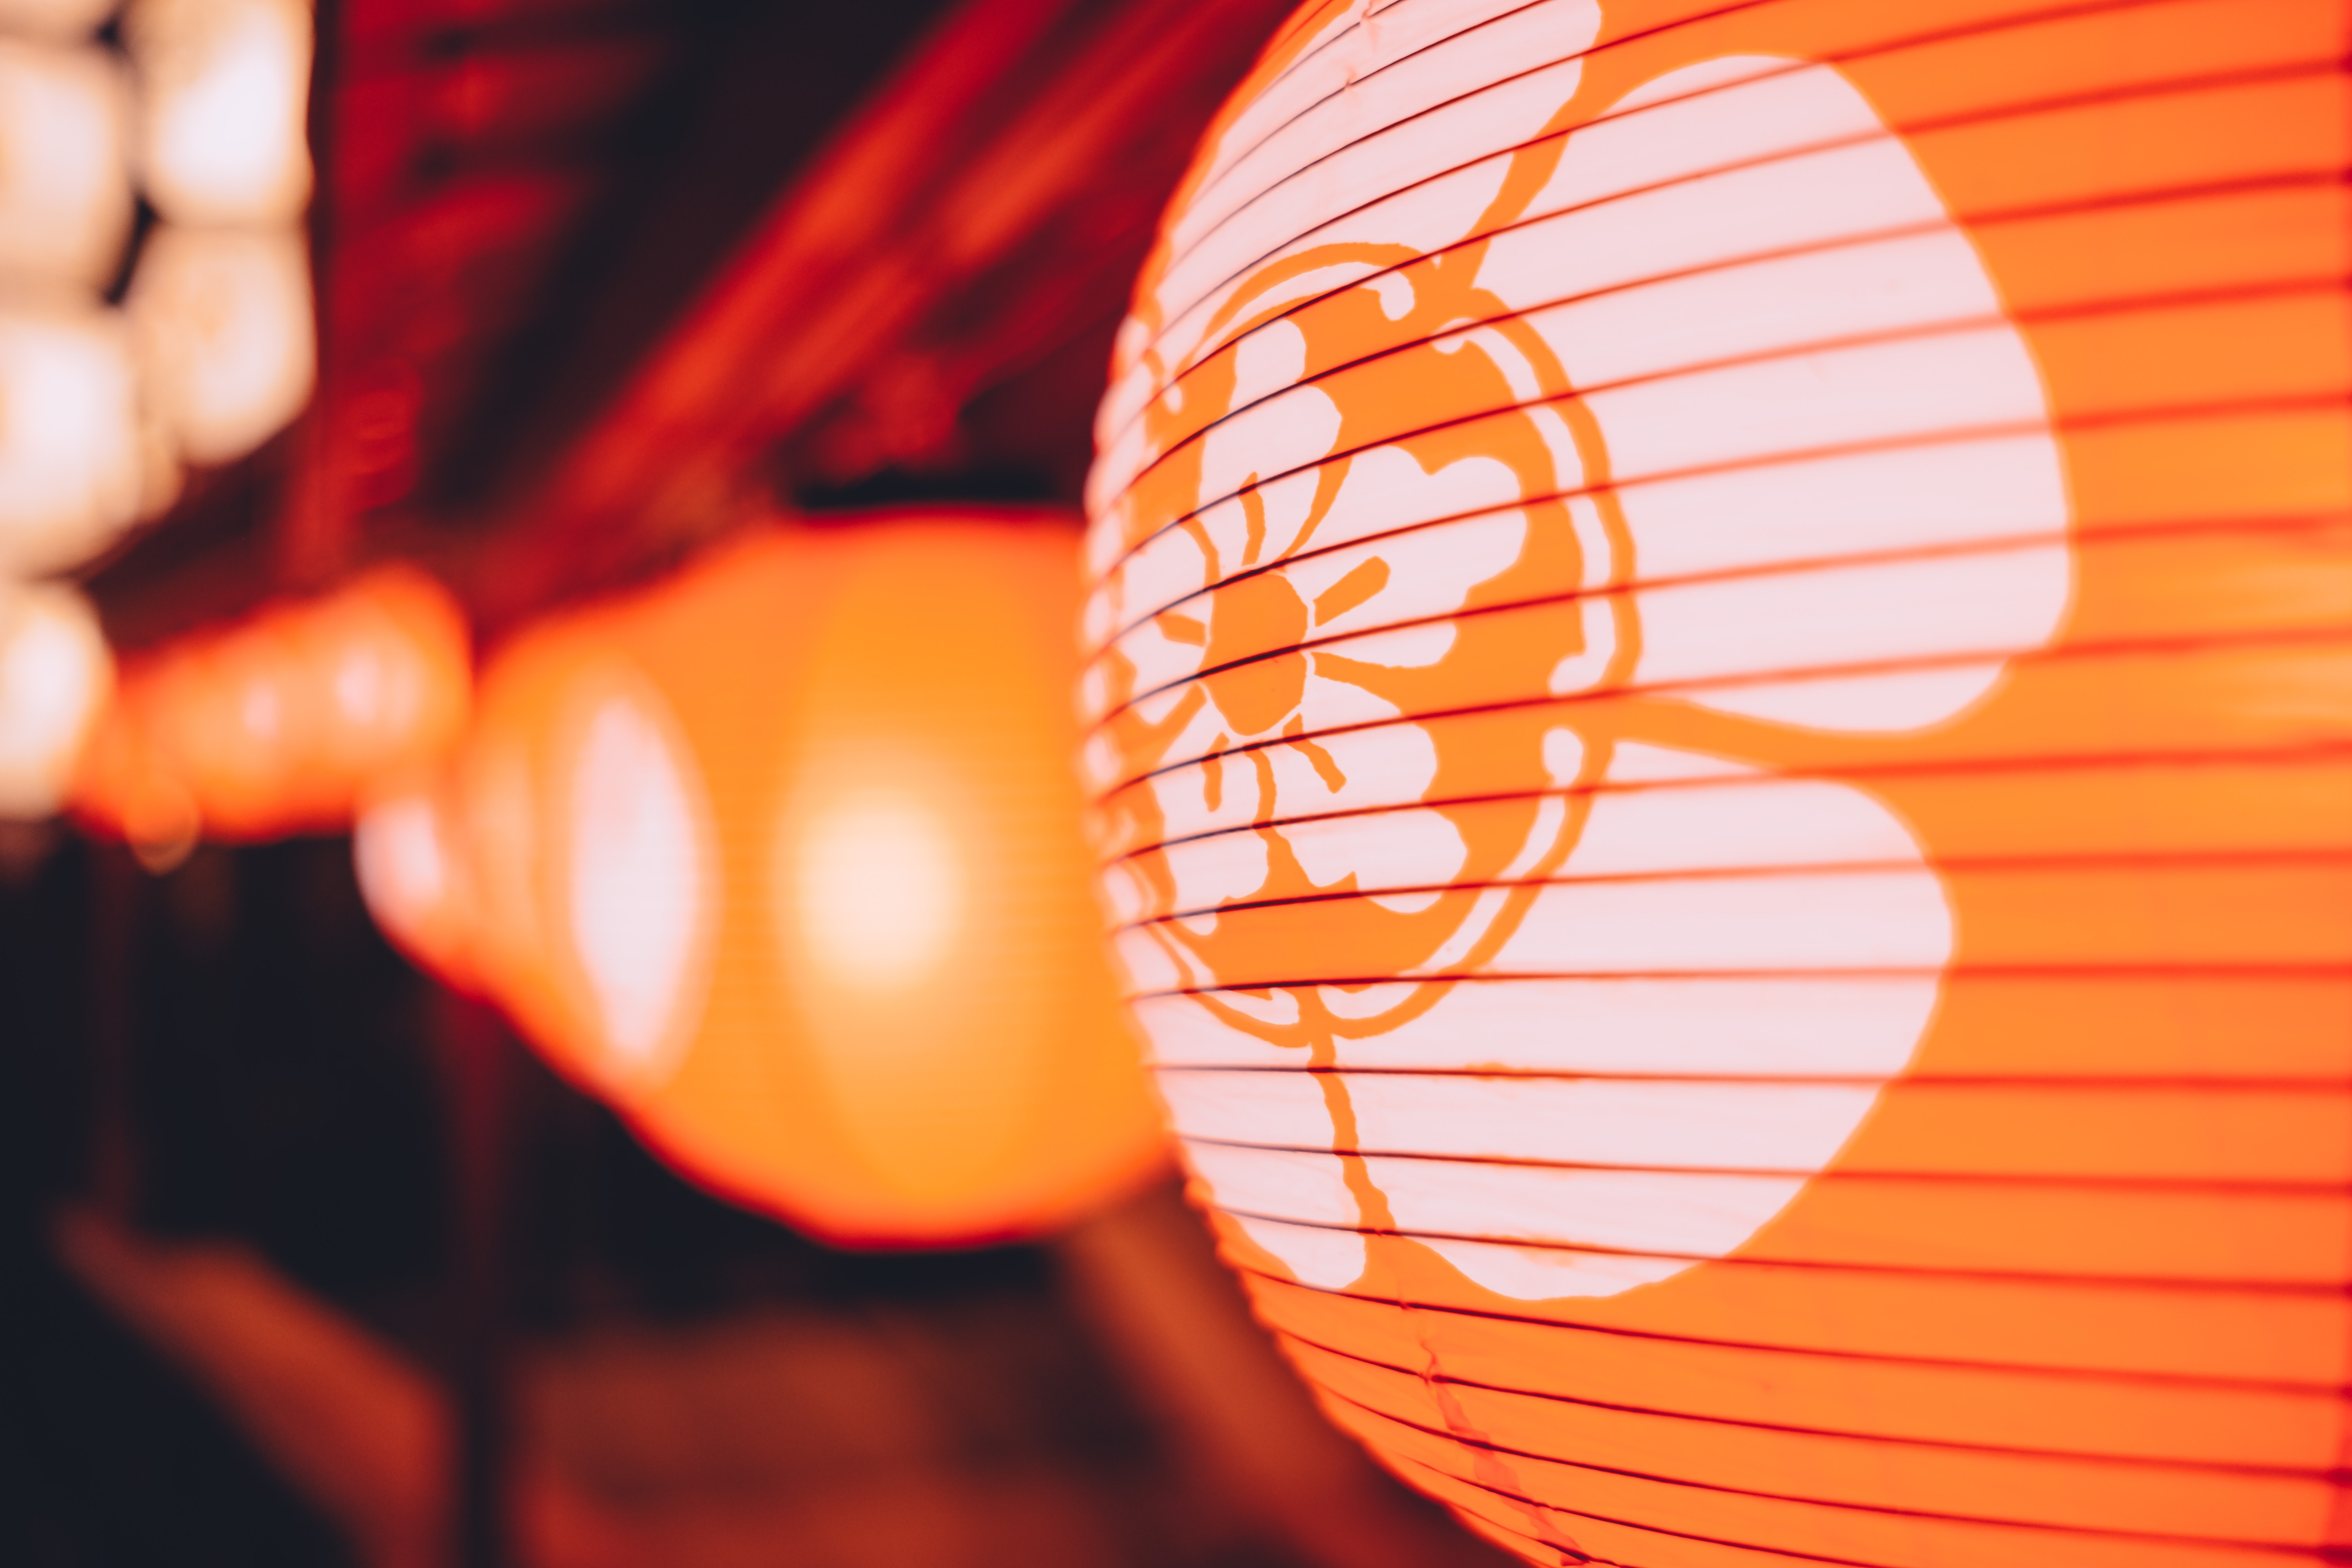 Macro of decorative glowing orange paper lantern with floral design in Kyoto